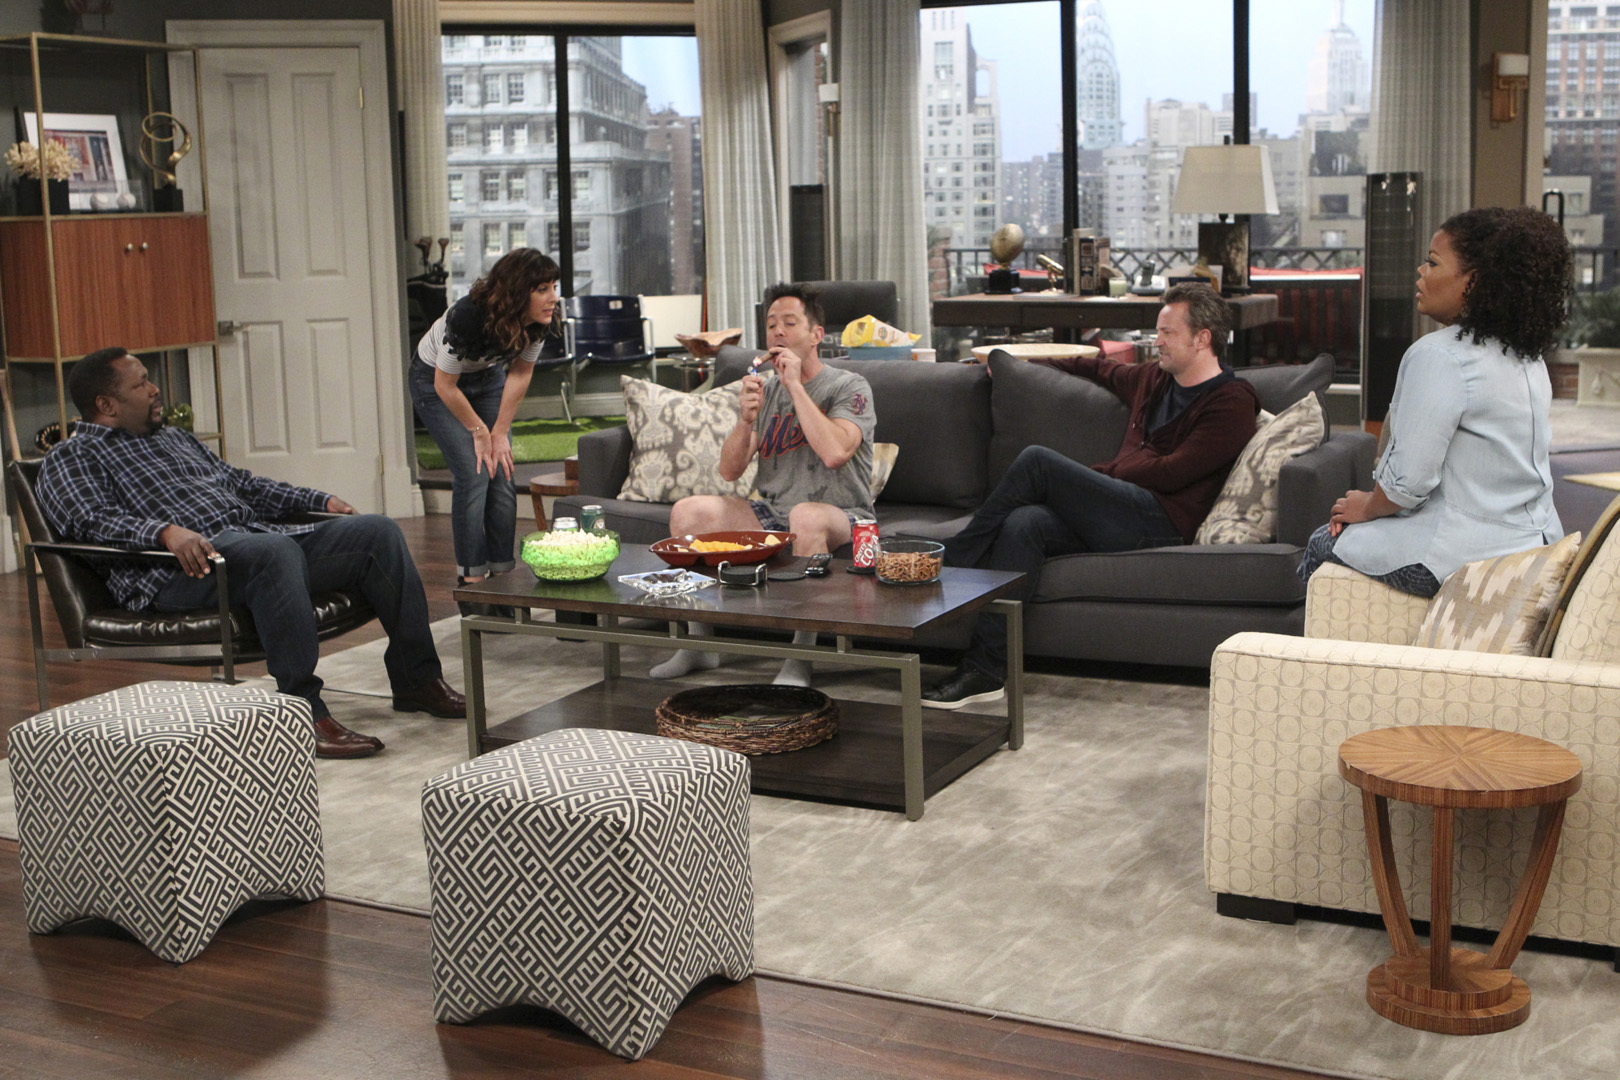 Felix cuts loose in the living room while surrounded by all his friends.